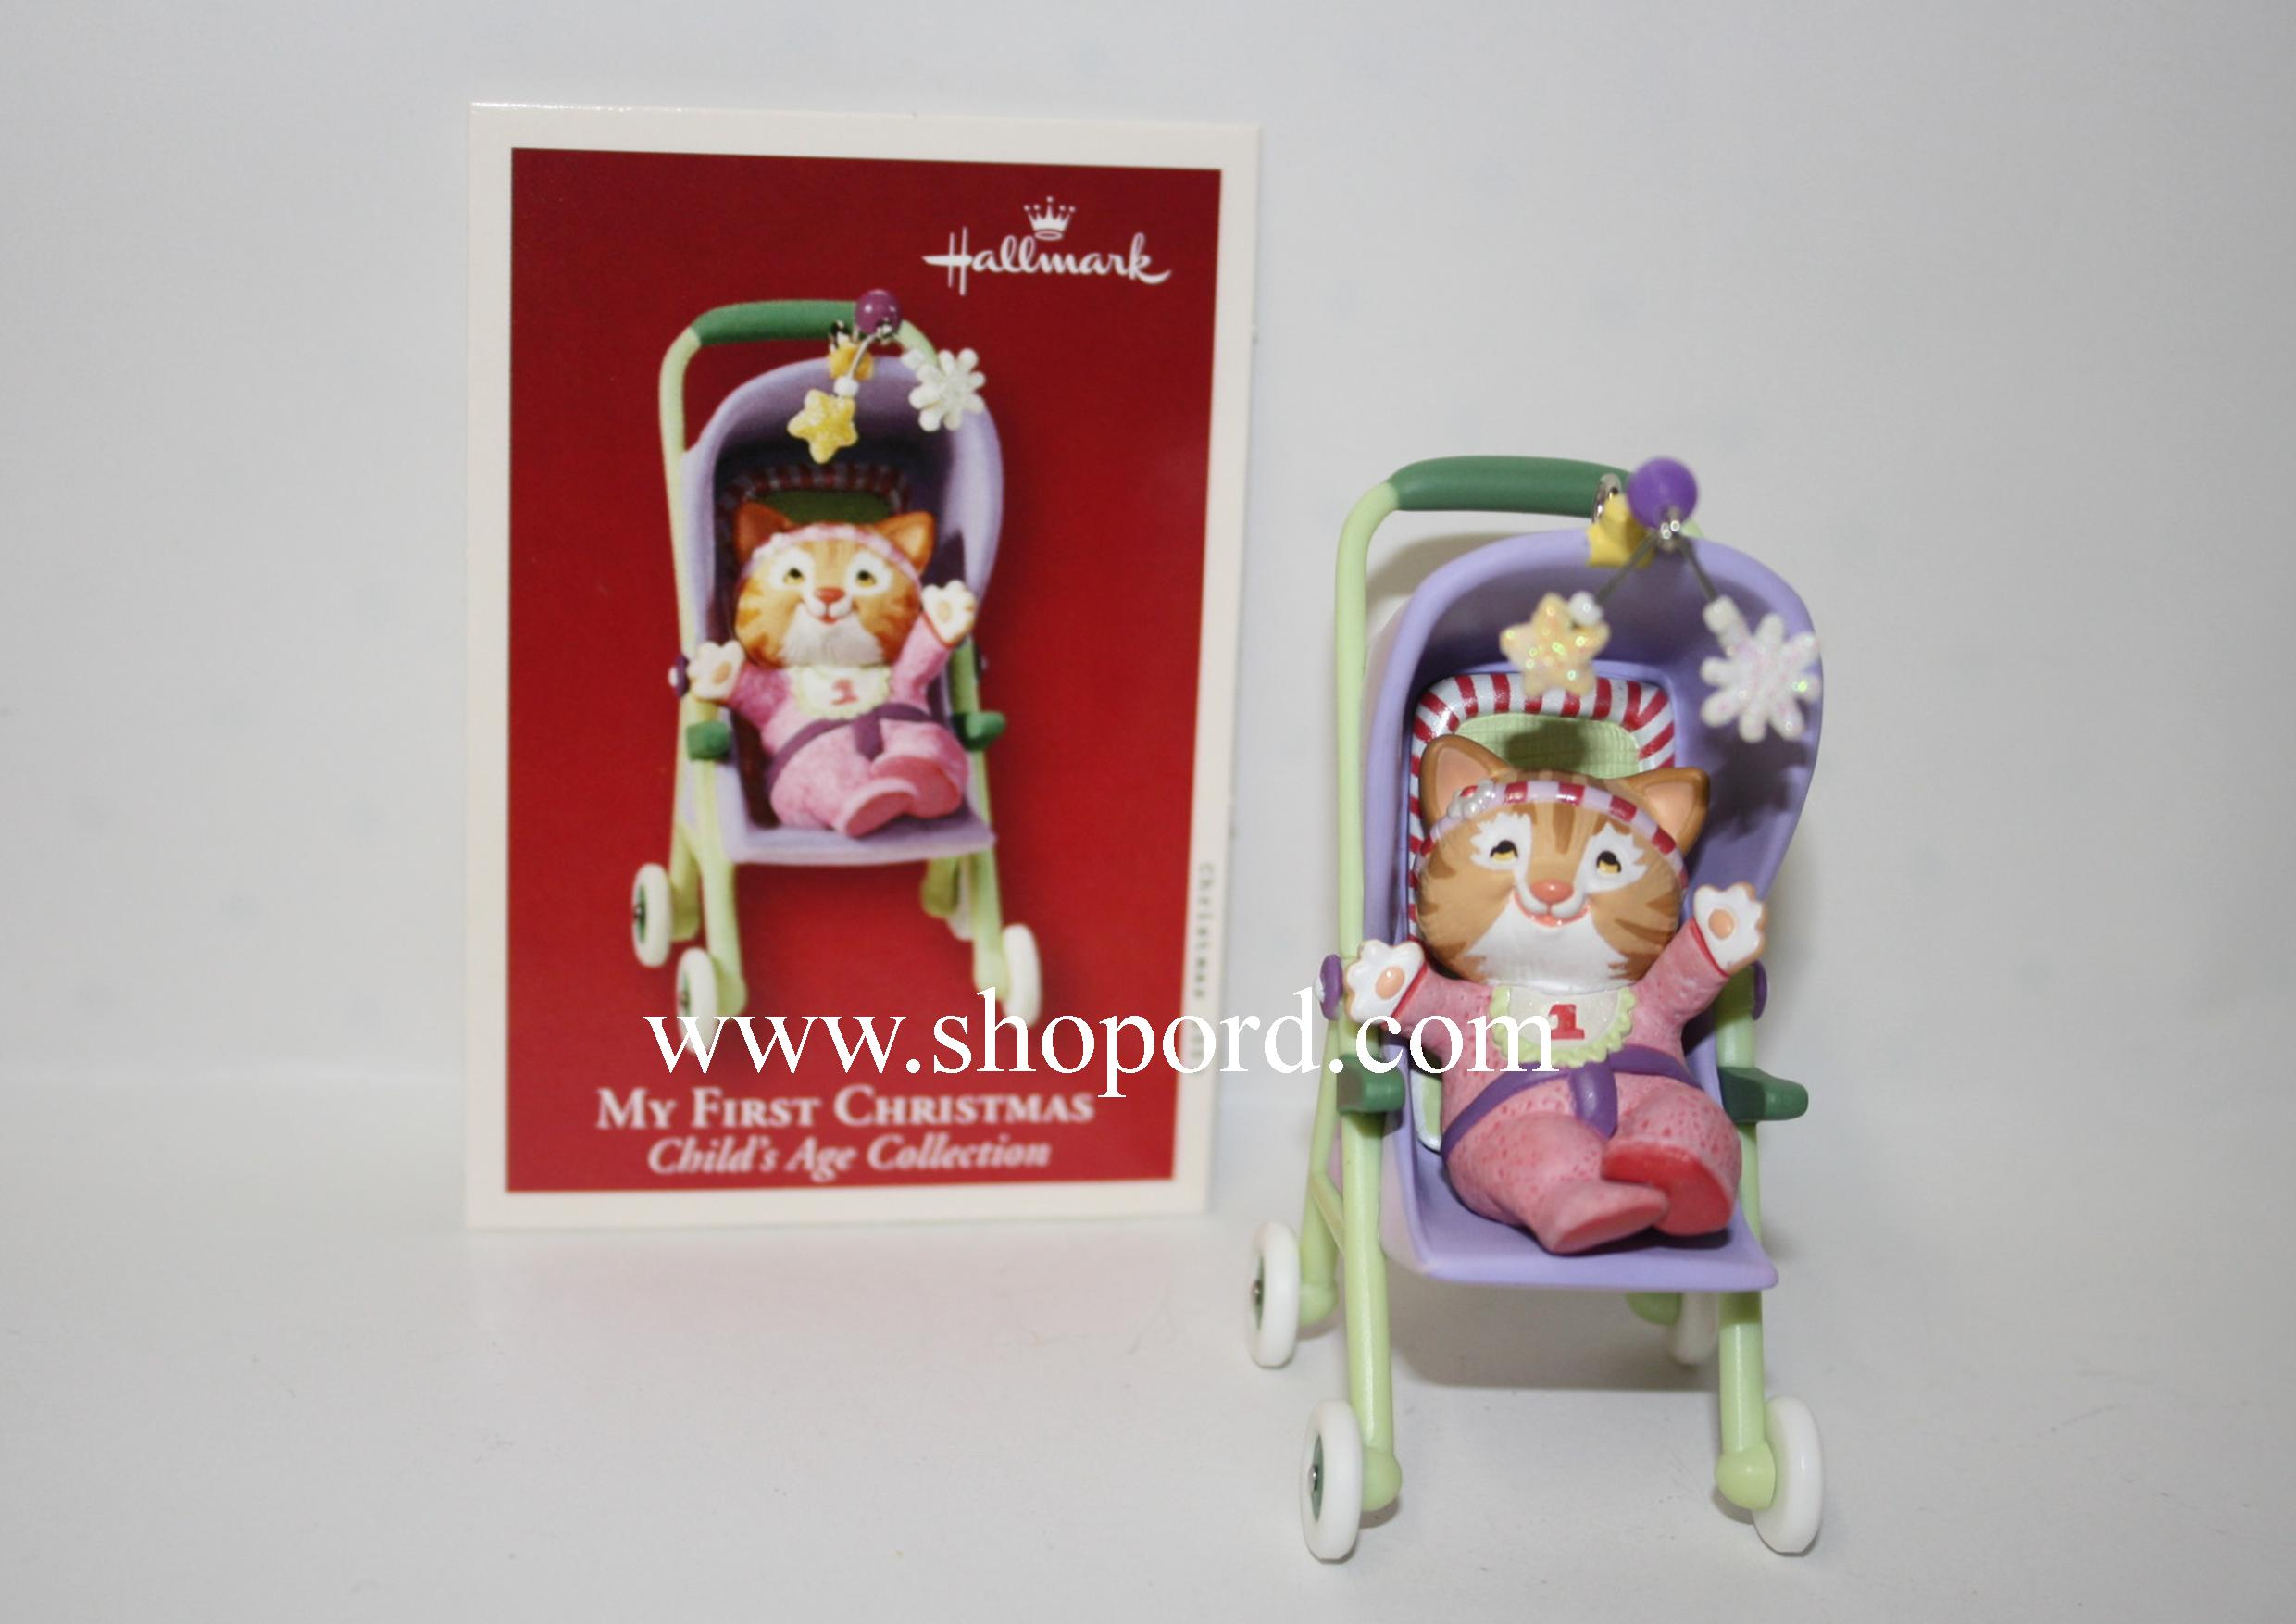 Hallmark 2003 My First Christmas Ornament Childs Age Collection Girl QXG2487